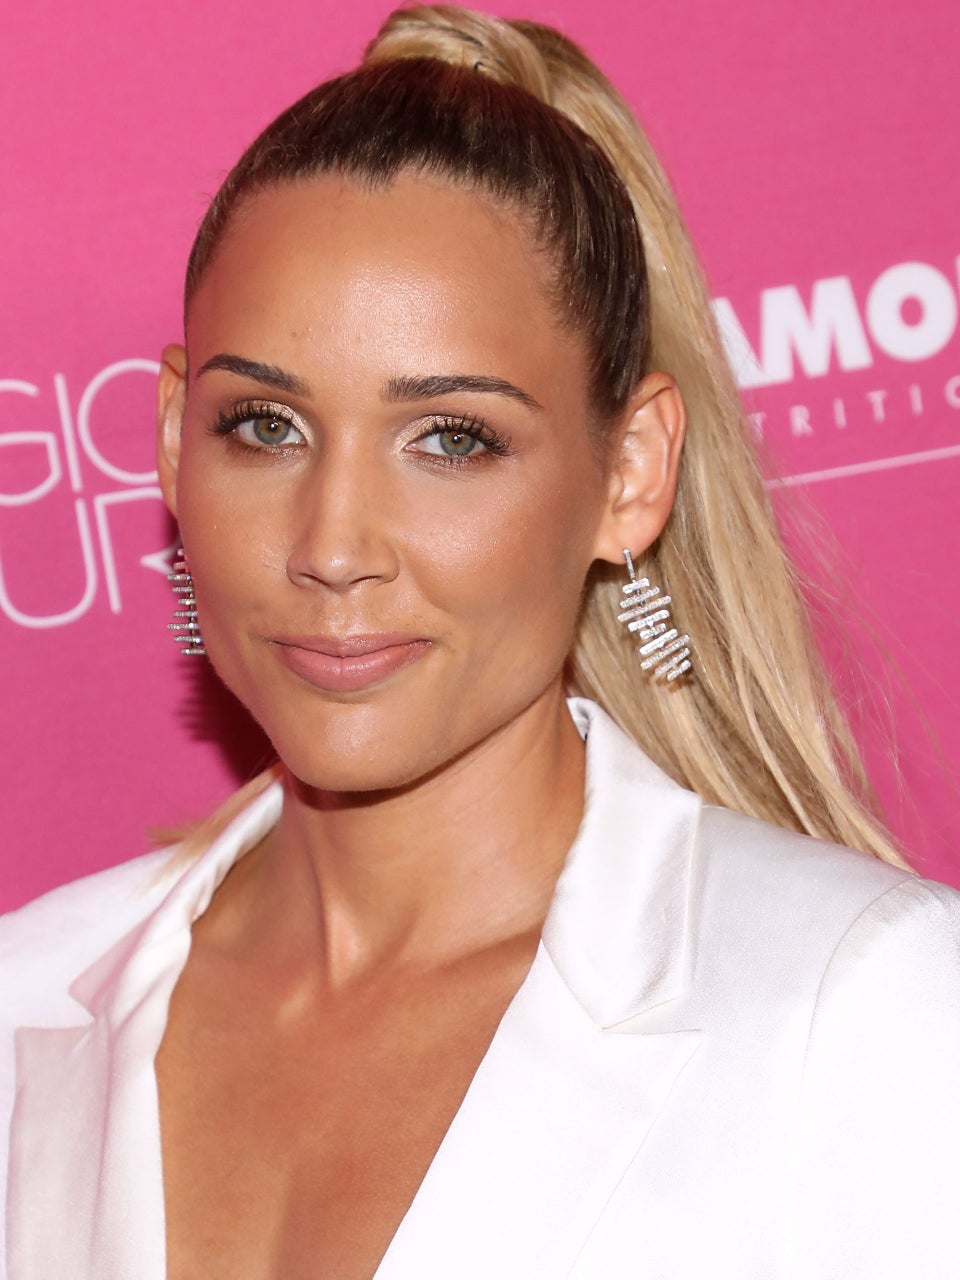 Lolo Jones And 7 Other Celebrity Women Who've Shared Their Frustration With Dating